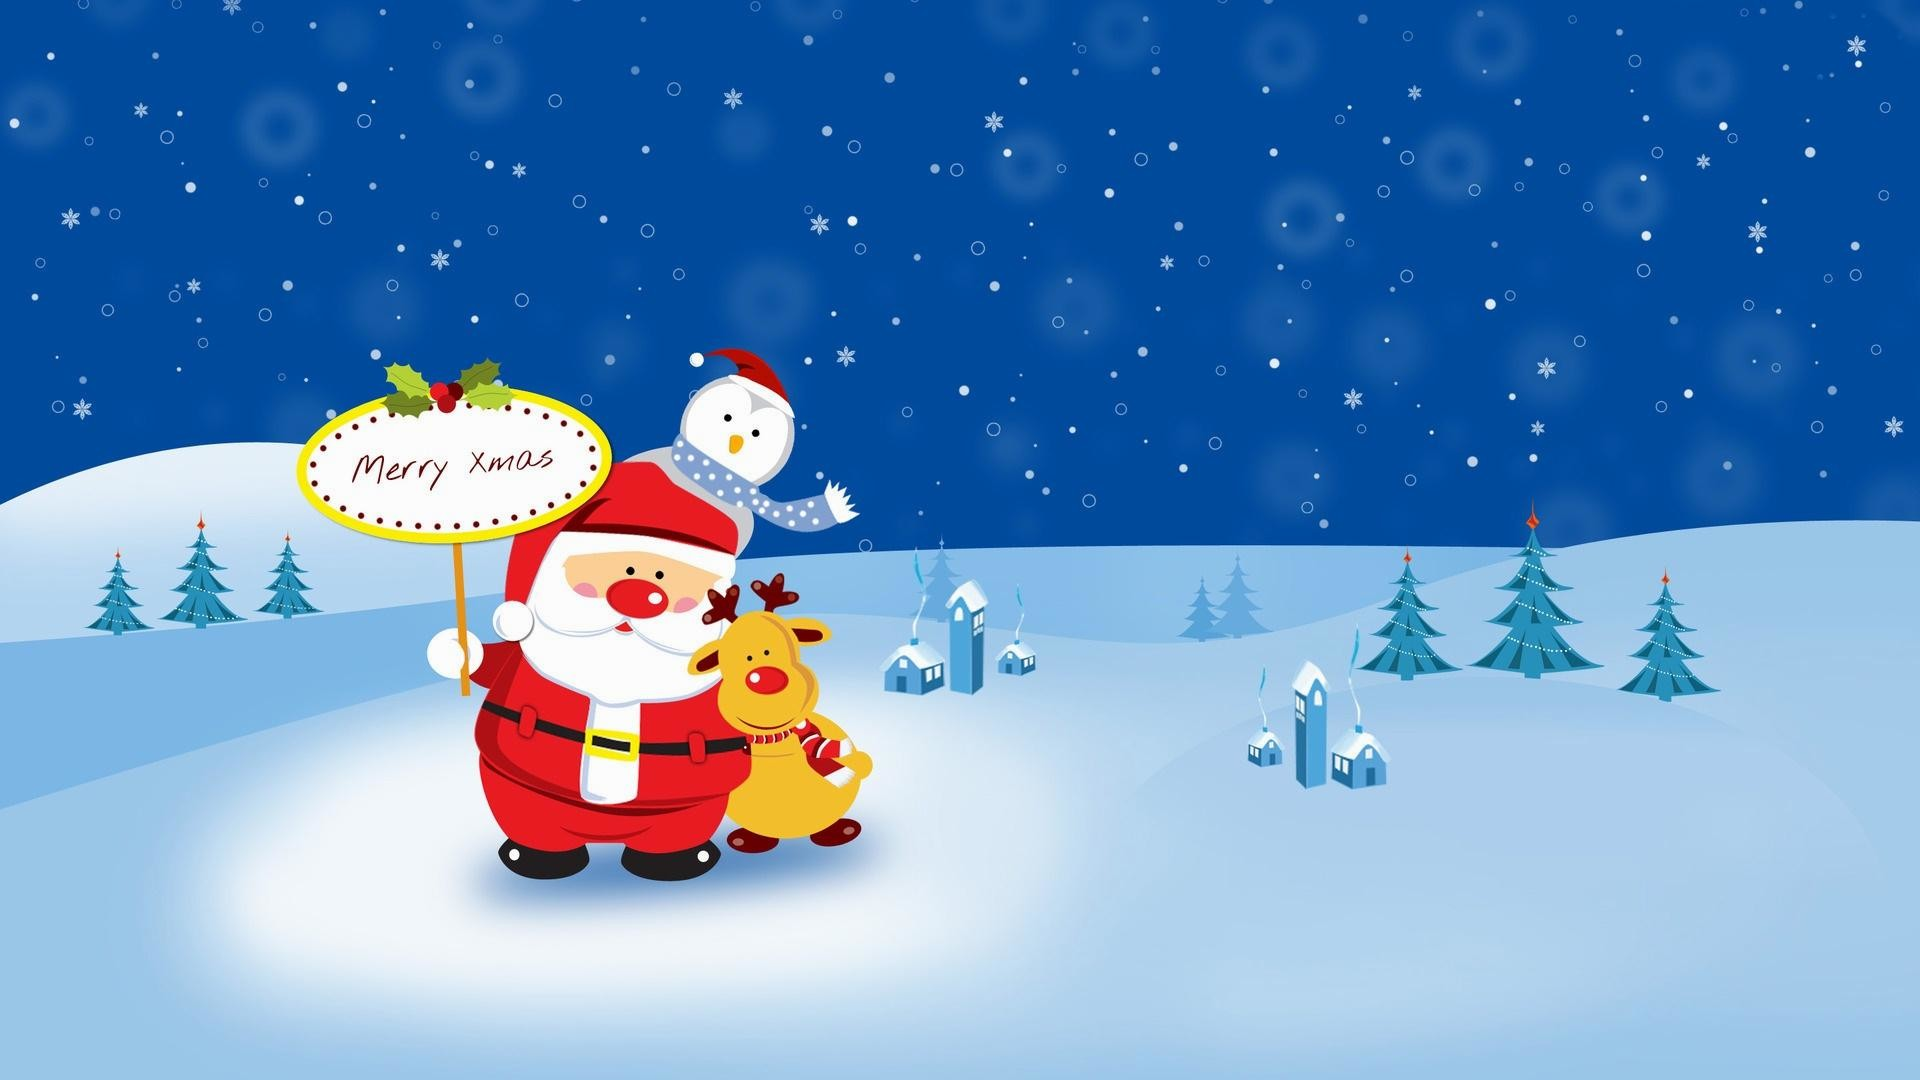 1920x1080 Cute Christmas Wallpaper Backgrounds Desktop For Iphone6